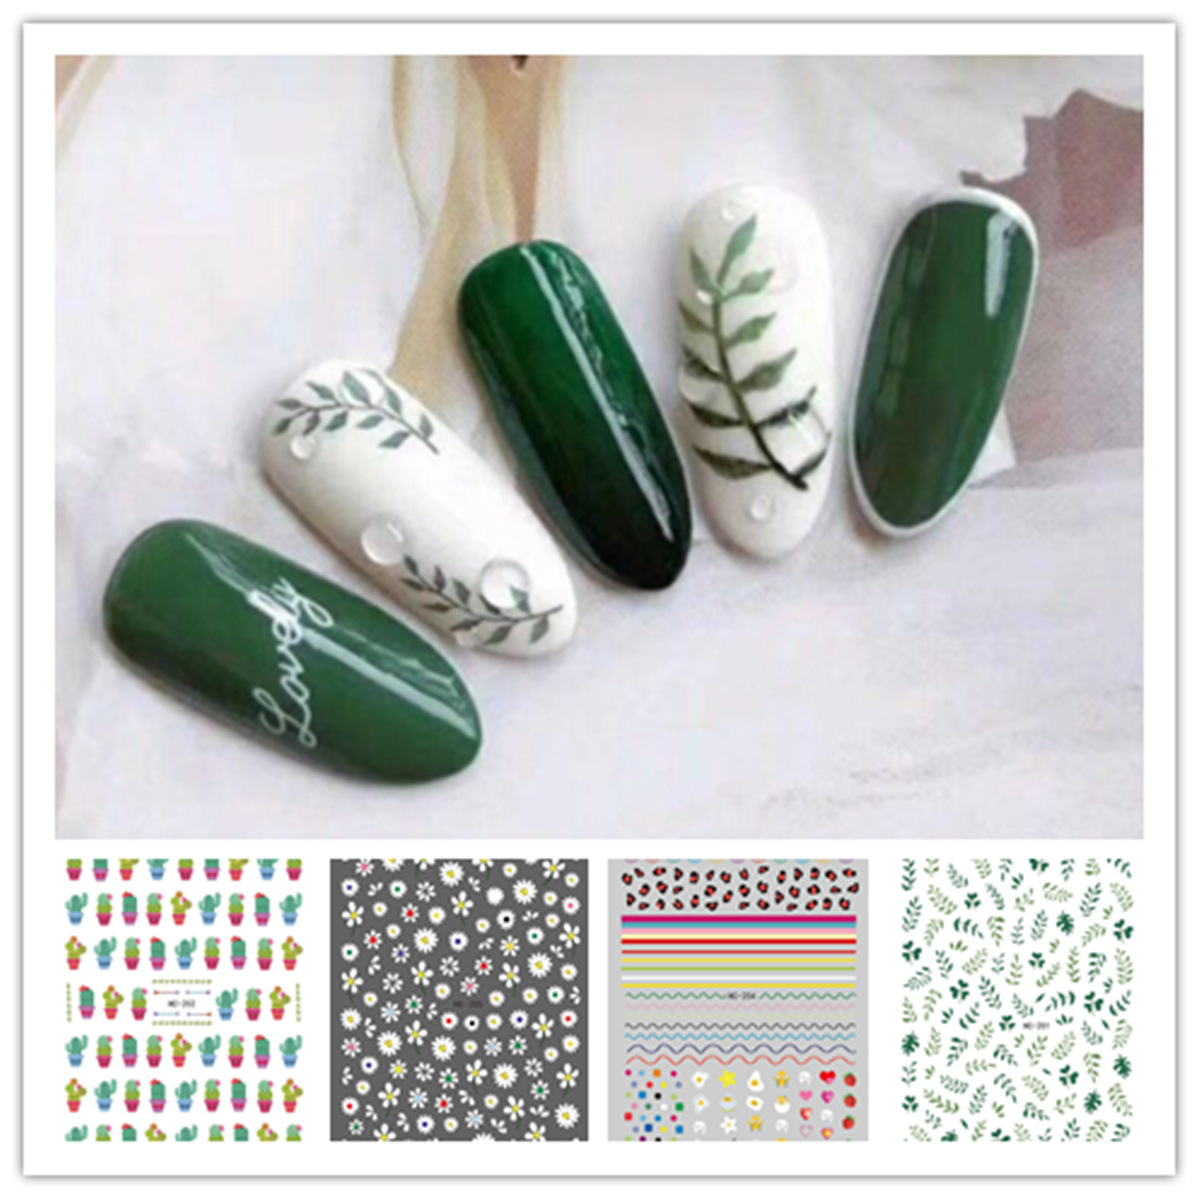 Nail Stickers Female Net Red Ins Cute New Color The Same Paragraph Nail Stickers Small Fresh Rainbow Flower Nail Stickers